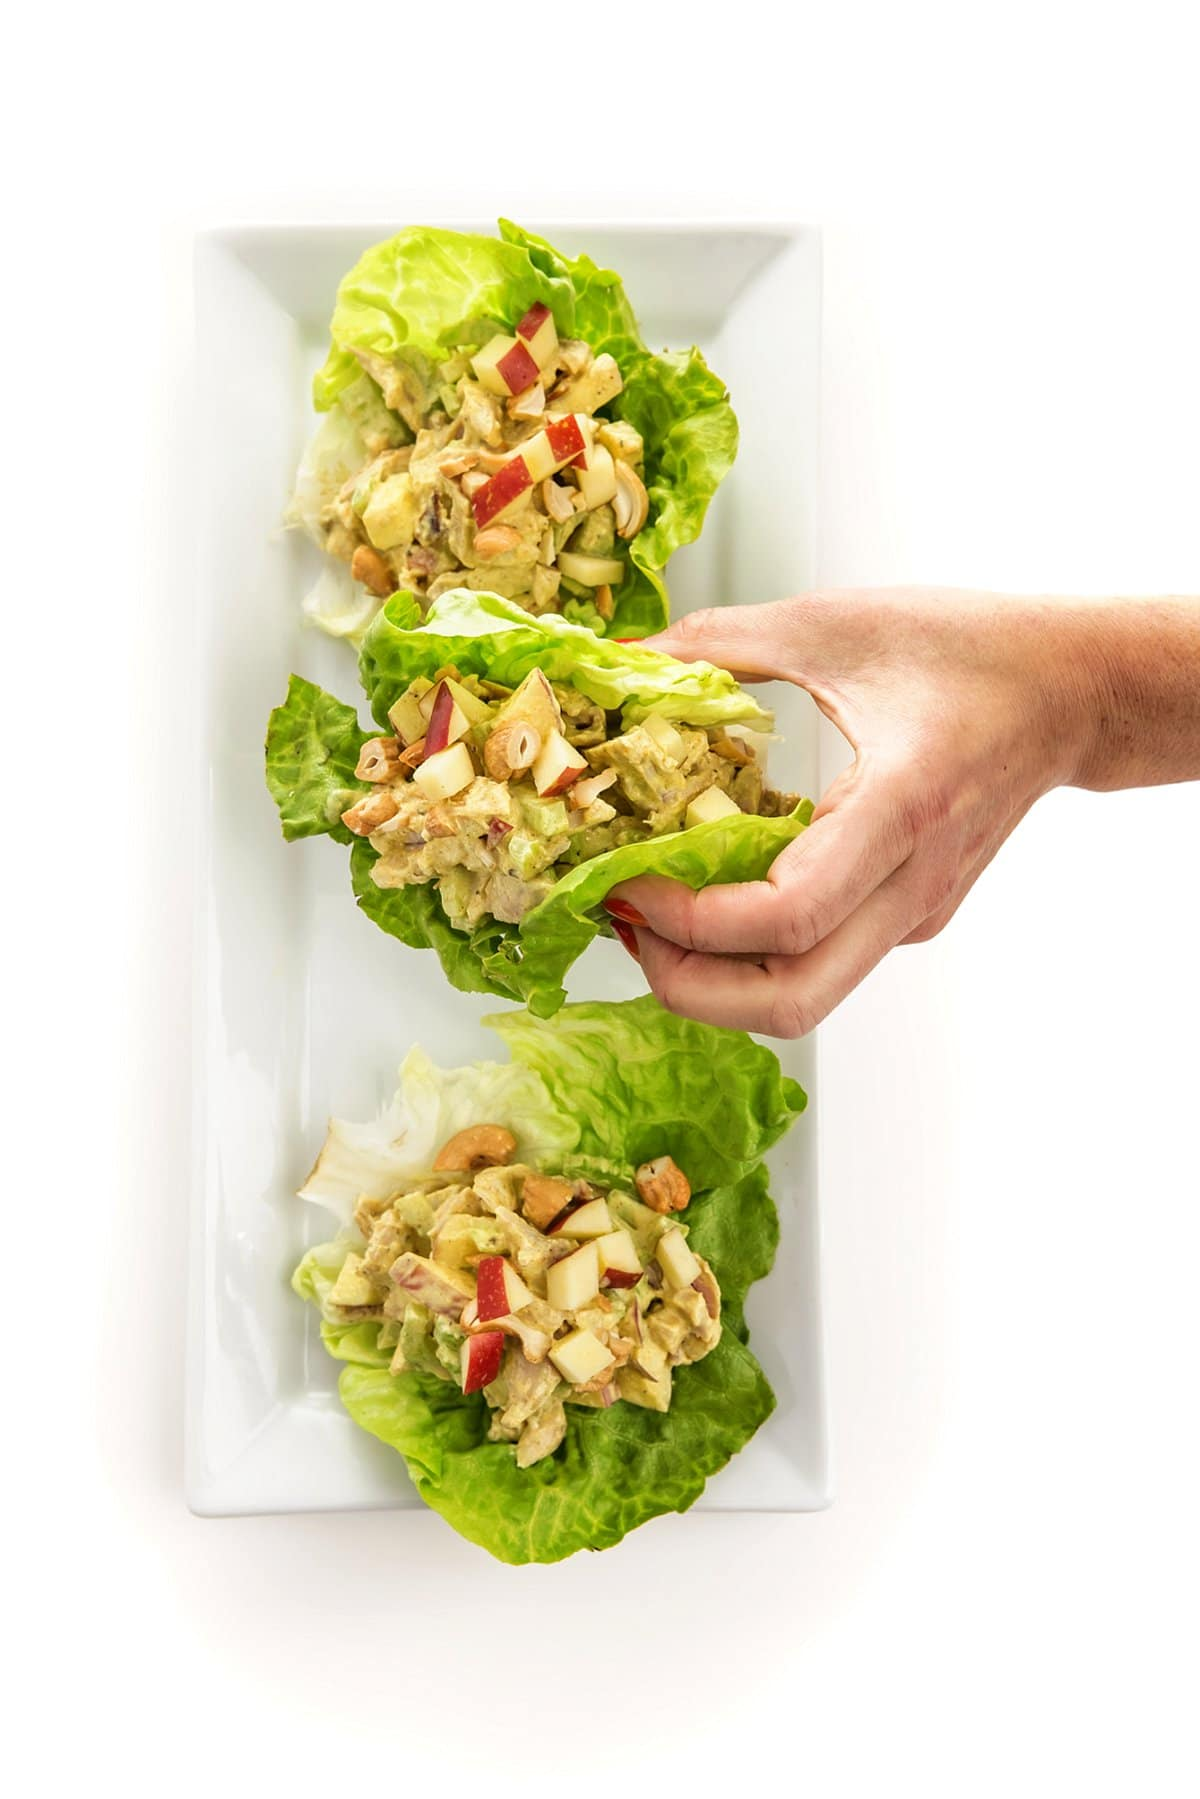 Liz grabbing a lettuce wrap with curried chicken salad with apples